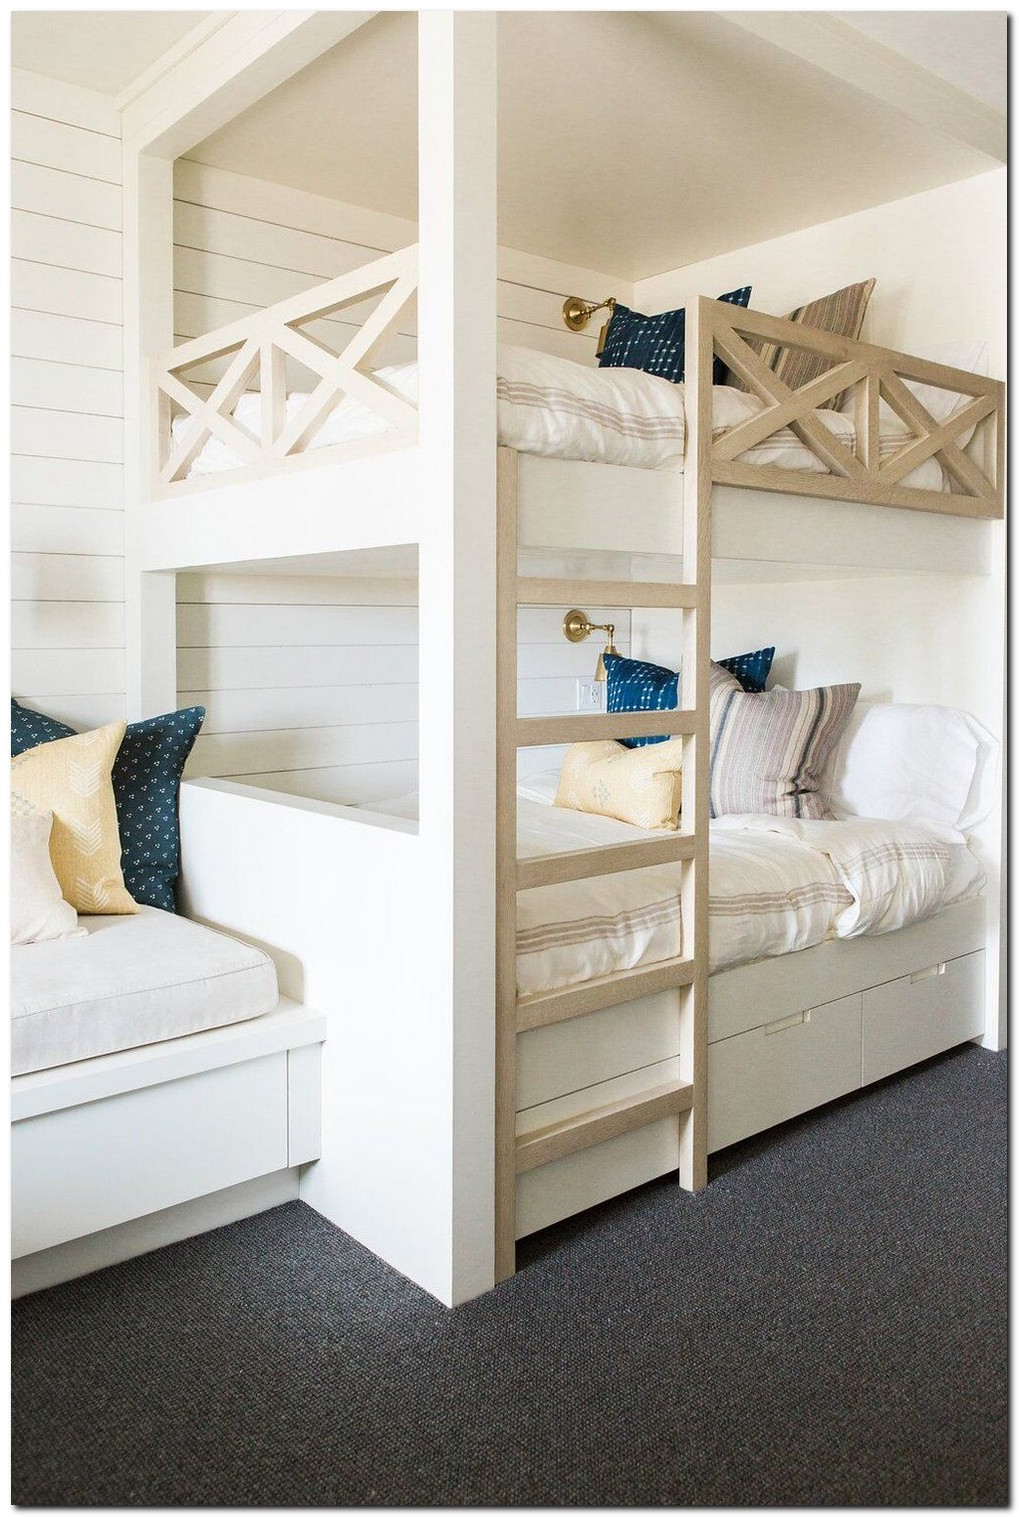 Beds for children choosing bunk beds for kids 23